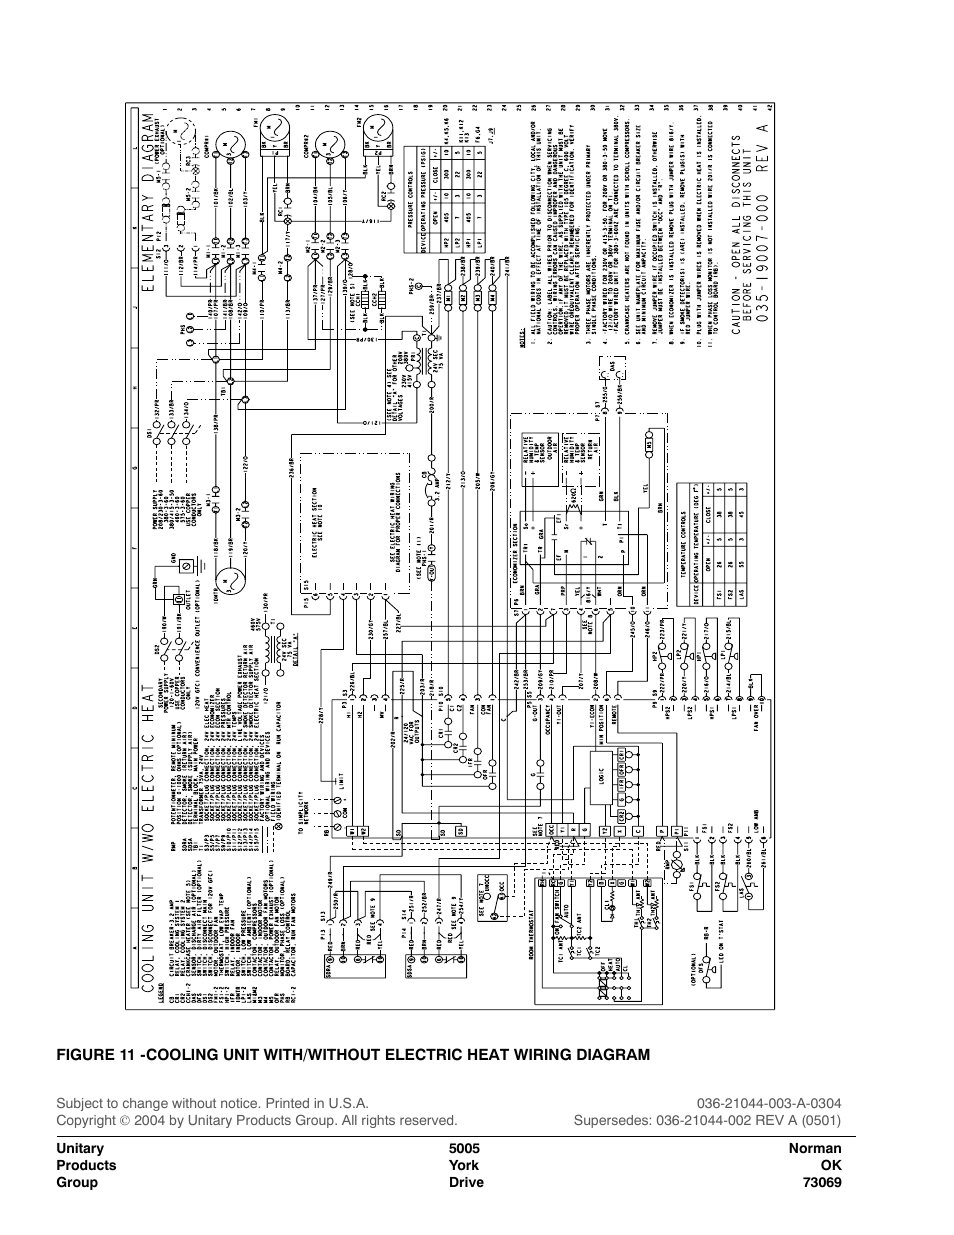 Wiring Diagram For Incubator Egg Incubator Heater Wiring